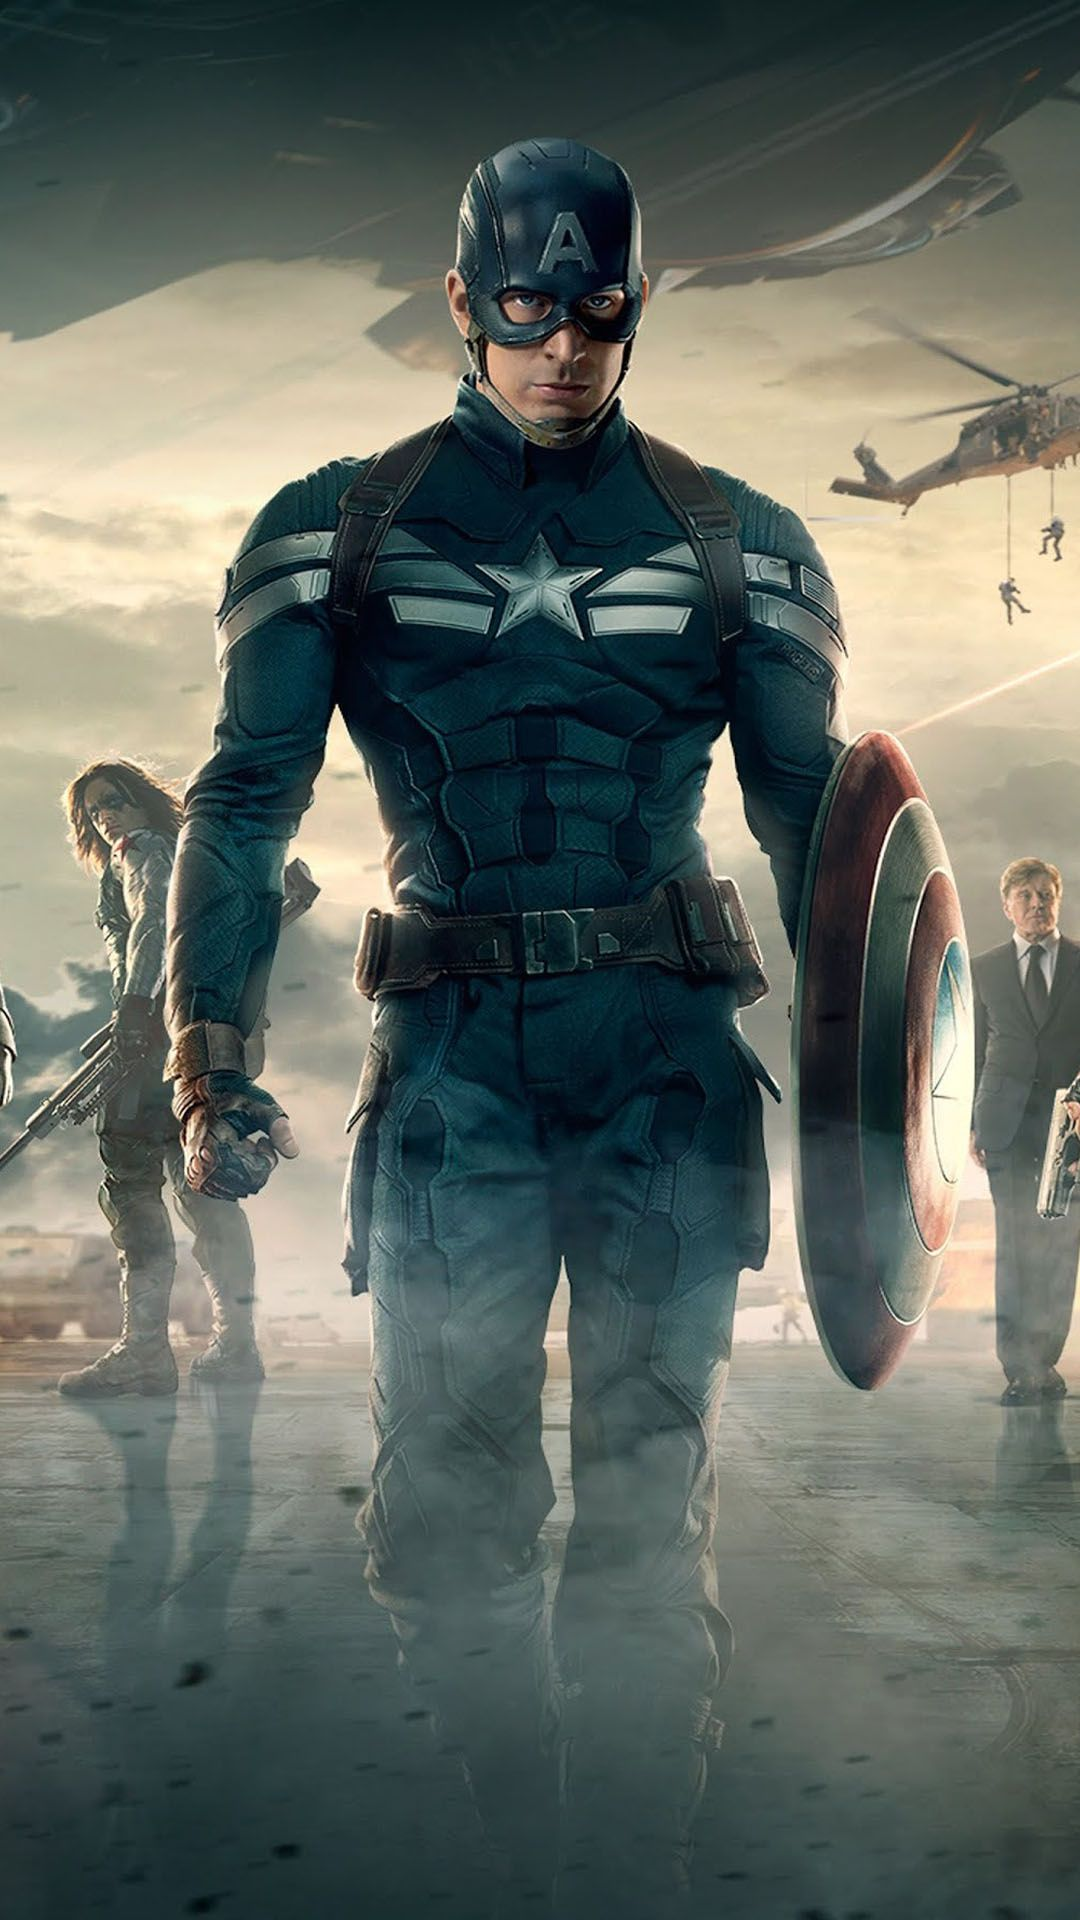 captain america 2 the winter soldier | htc one wallpaper | pinterest